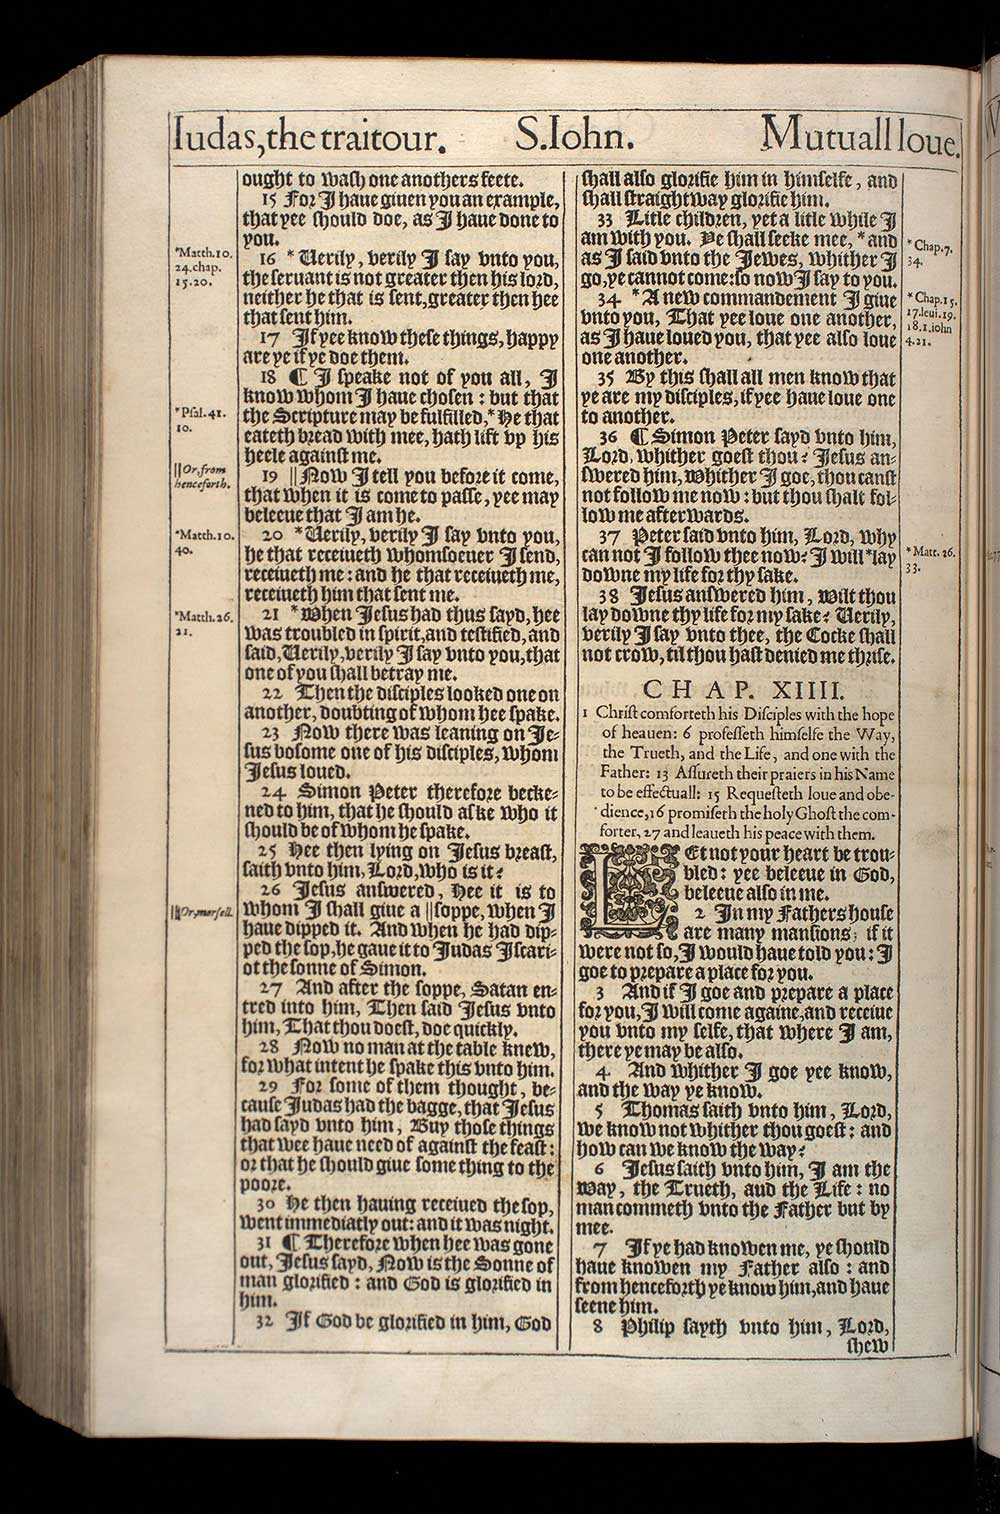 John Chapter 14 Original 1611 Bible Scan